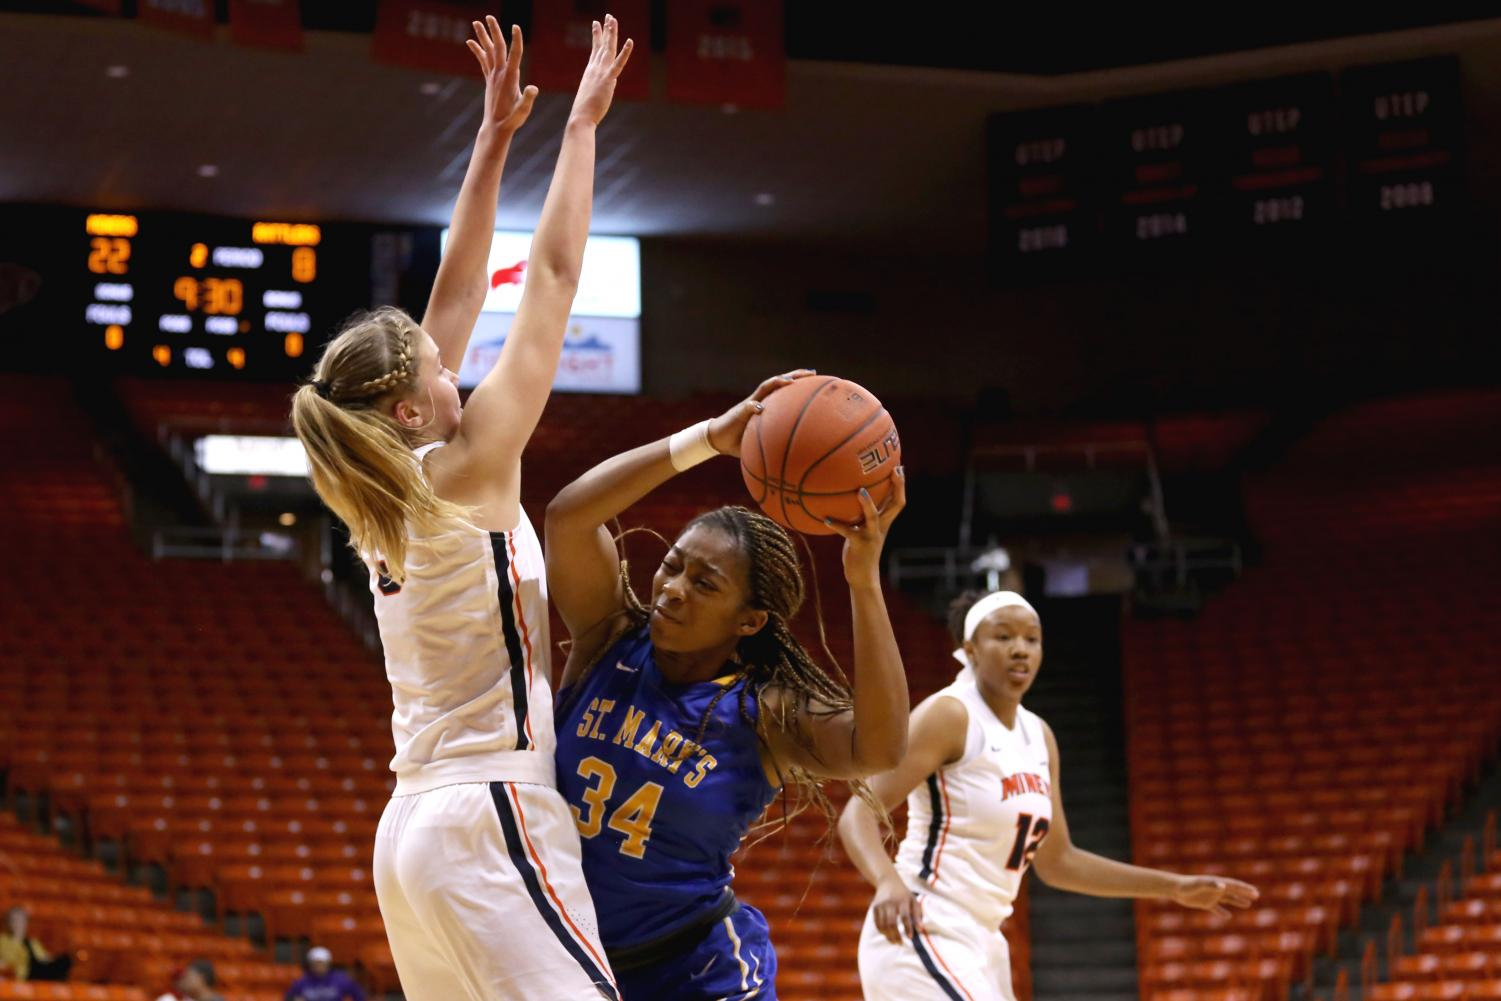 Junior forward Zuzanna Puc led the  Miners with 15 points at an exhibition game against the St. Mary's Rattlers on Sunday, Nov. 4 at the Don Haskins Center.